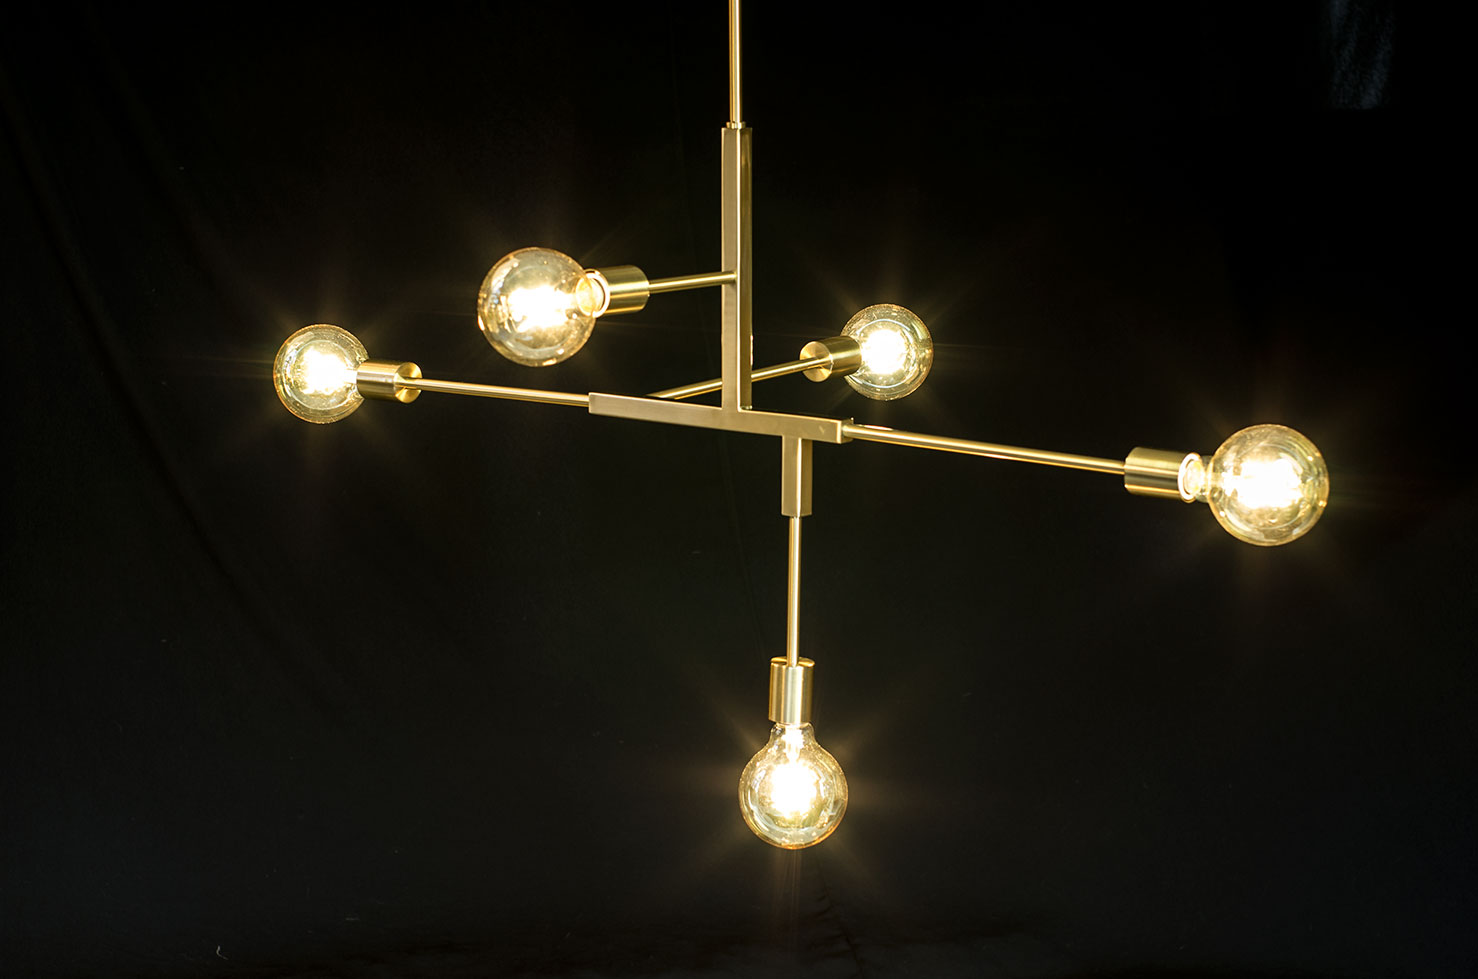 Minimalist Pendant Light Filament Bulbs